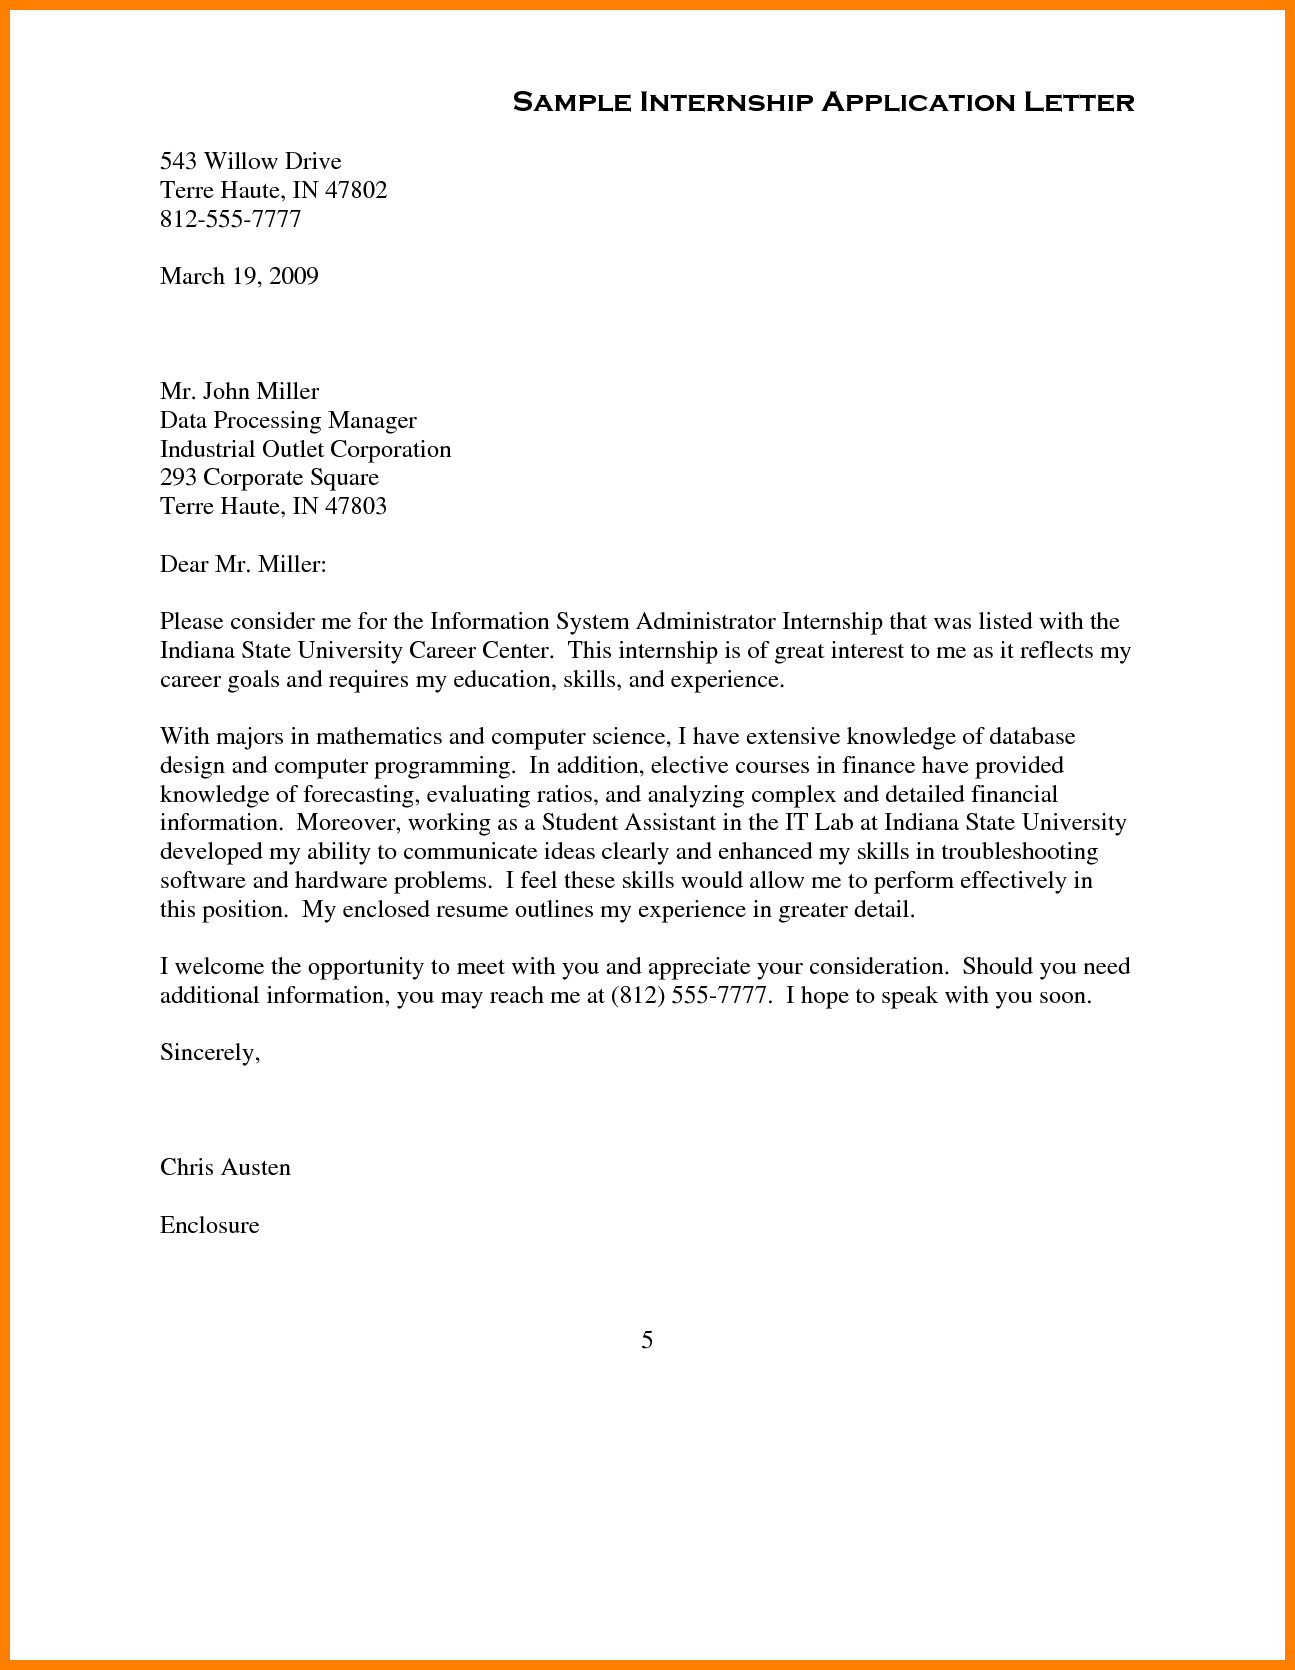 Application Letter Sample With Full Block Style Format